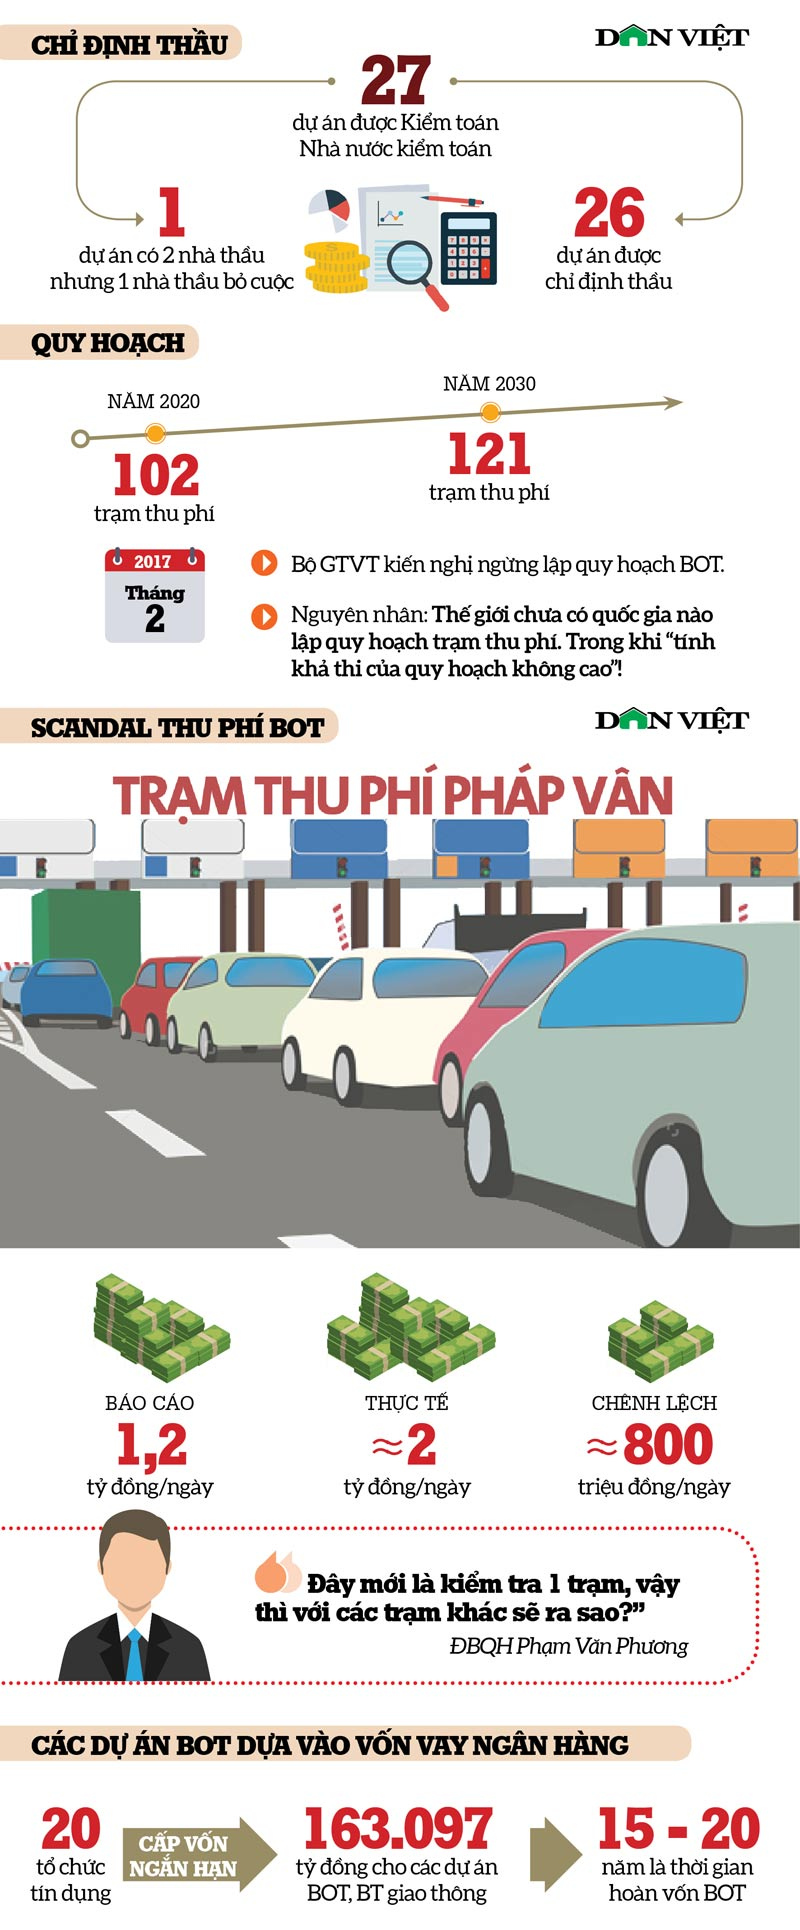 infographic: bot - thien la dia vong hinh anh 2